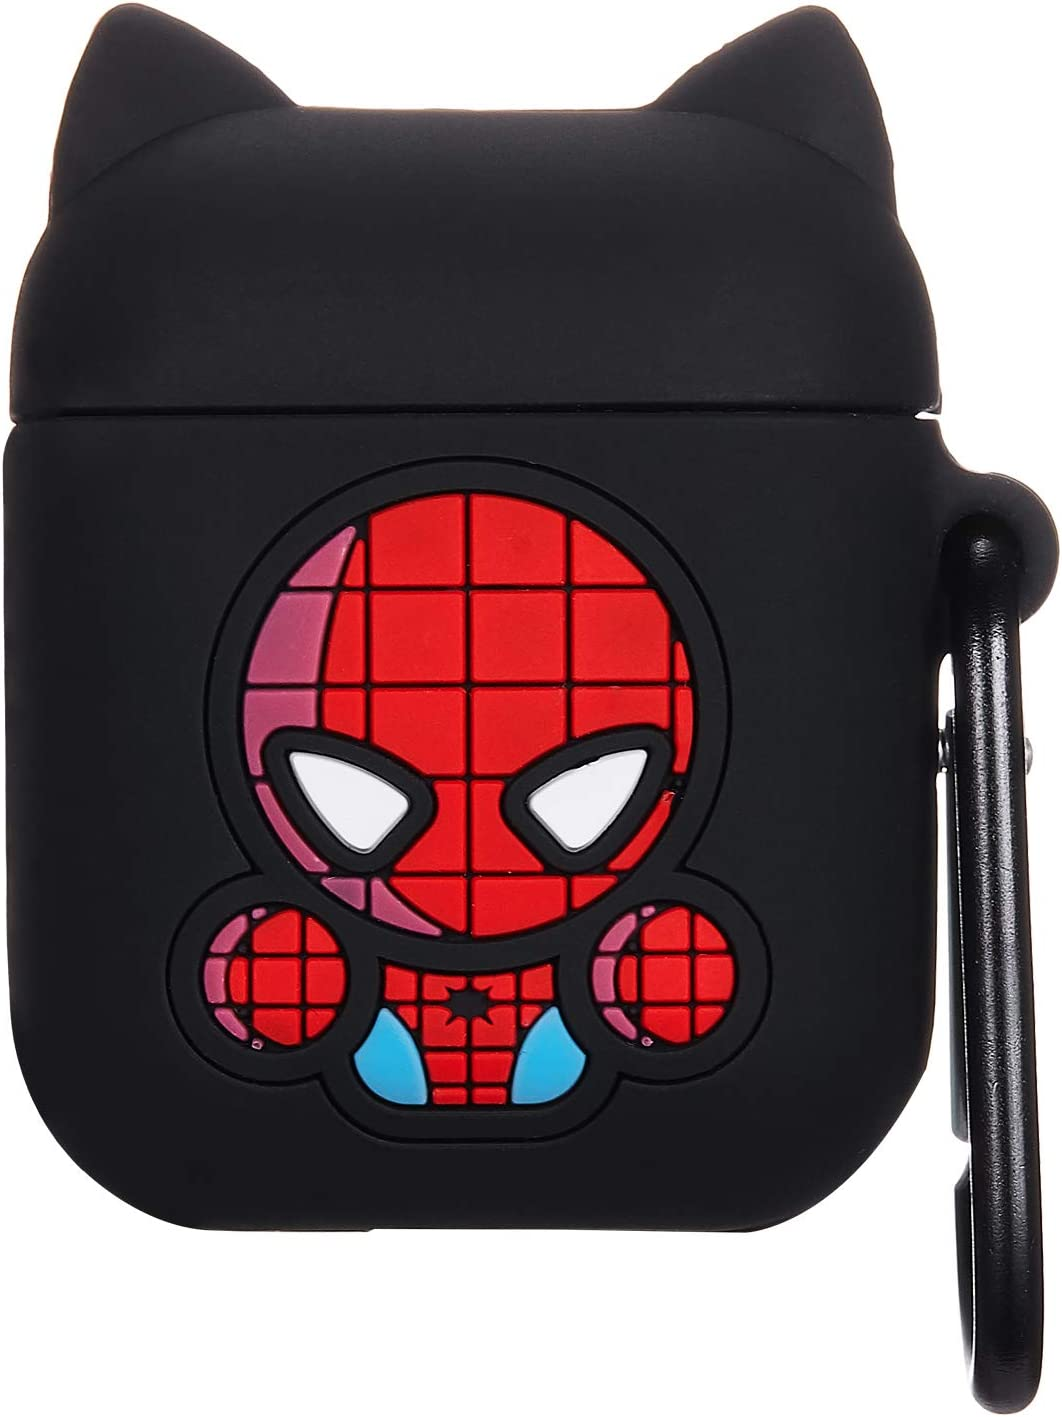 Mulafnxal Compatible with Airpods 1/&2 Case,3D Funny Cartoon Character Silicone Airpod Cover,Kawaii Fun Cool Catalyst Design Skin,Fashion Animal Cases for Girls Kids Teens Boys Air pods Cute Spider